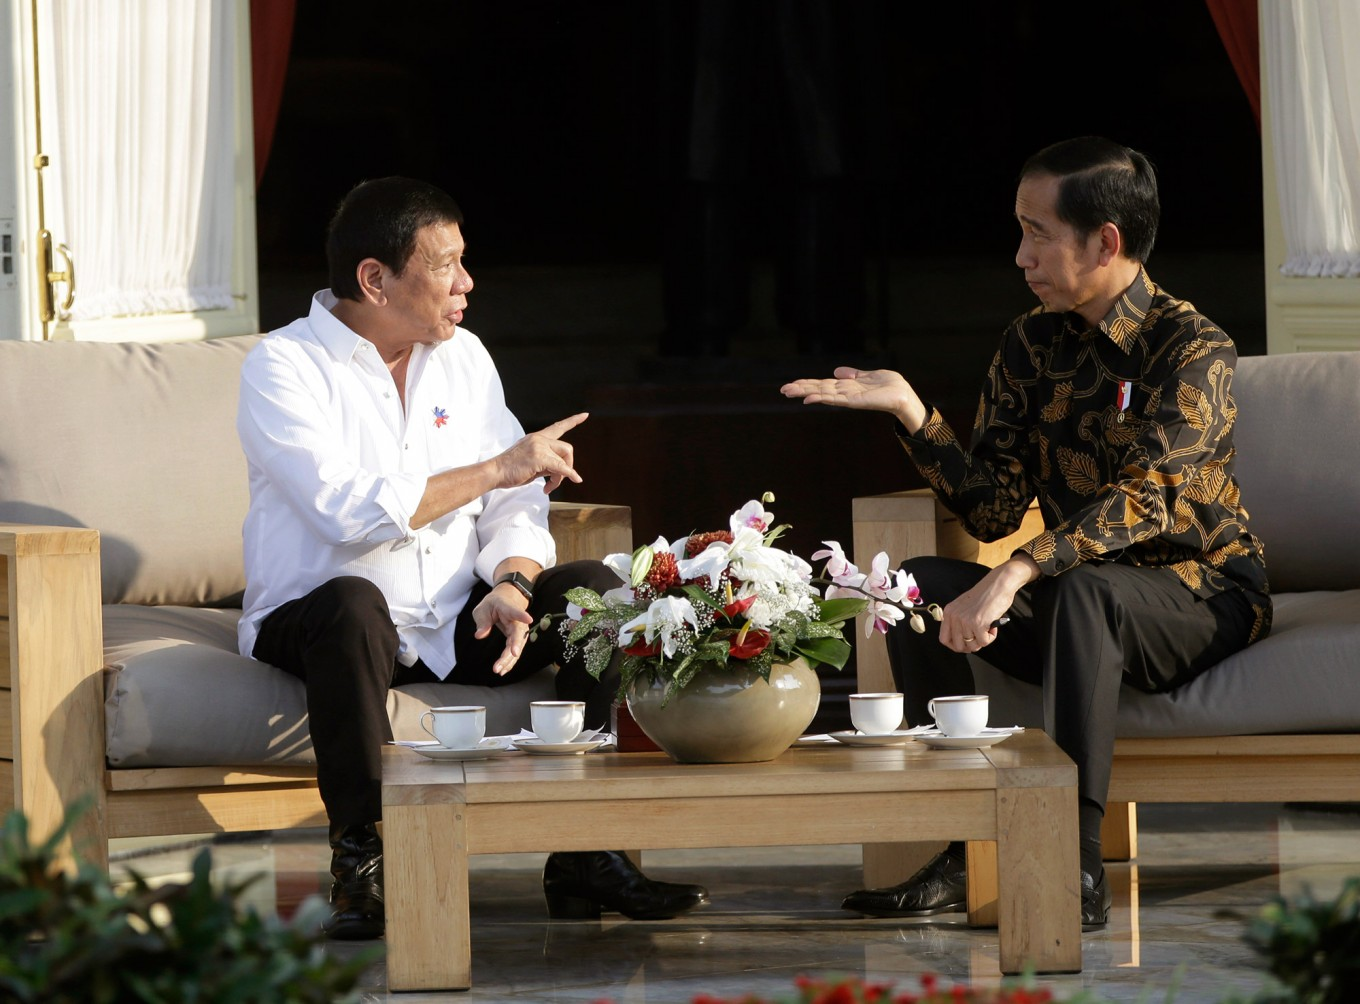 Indonesia expects stronger economic ties with Philippines